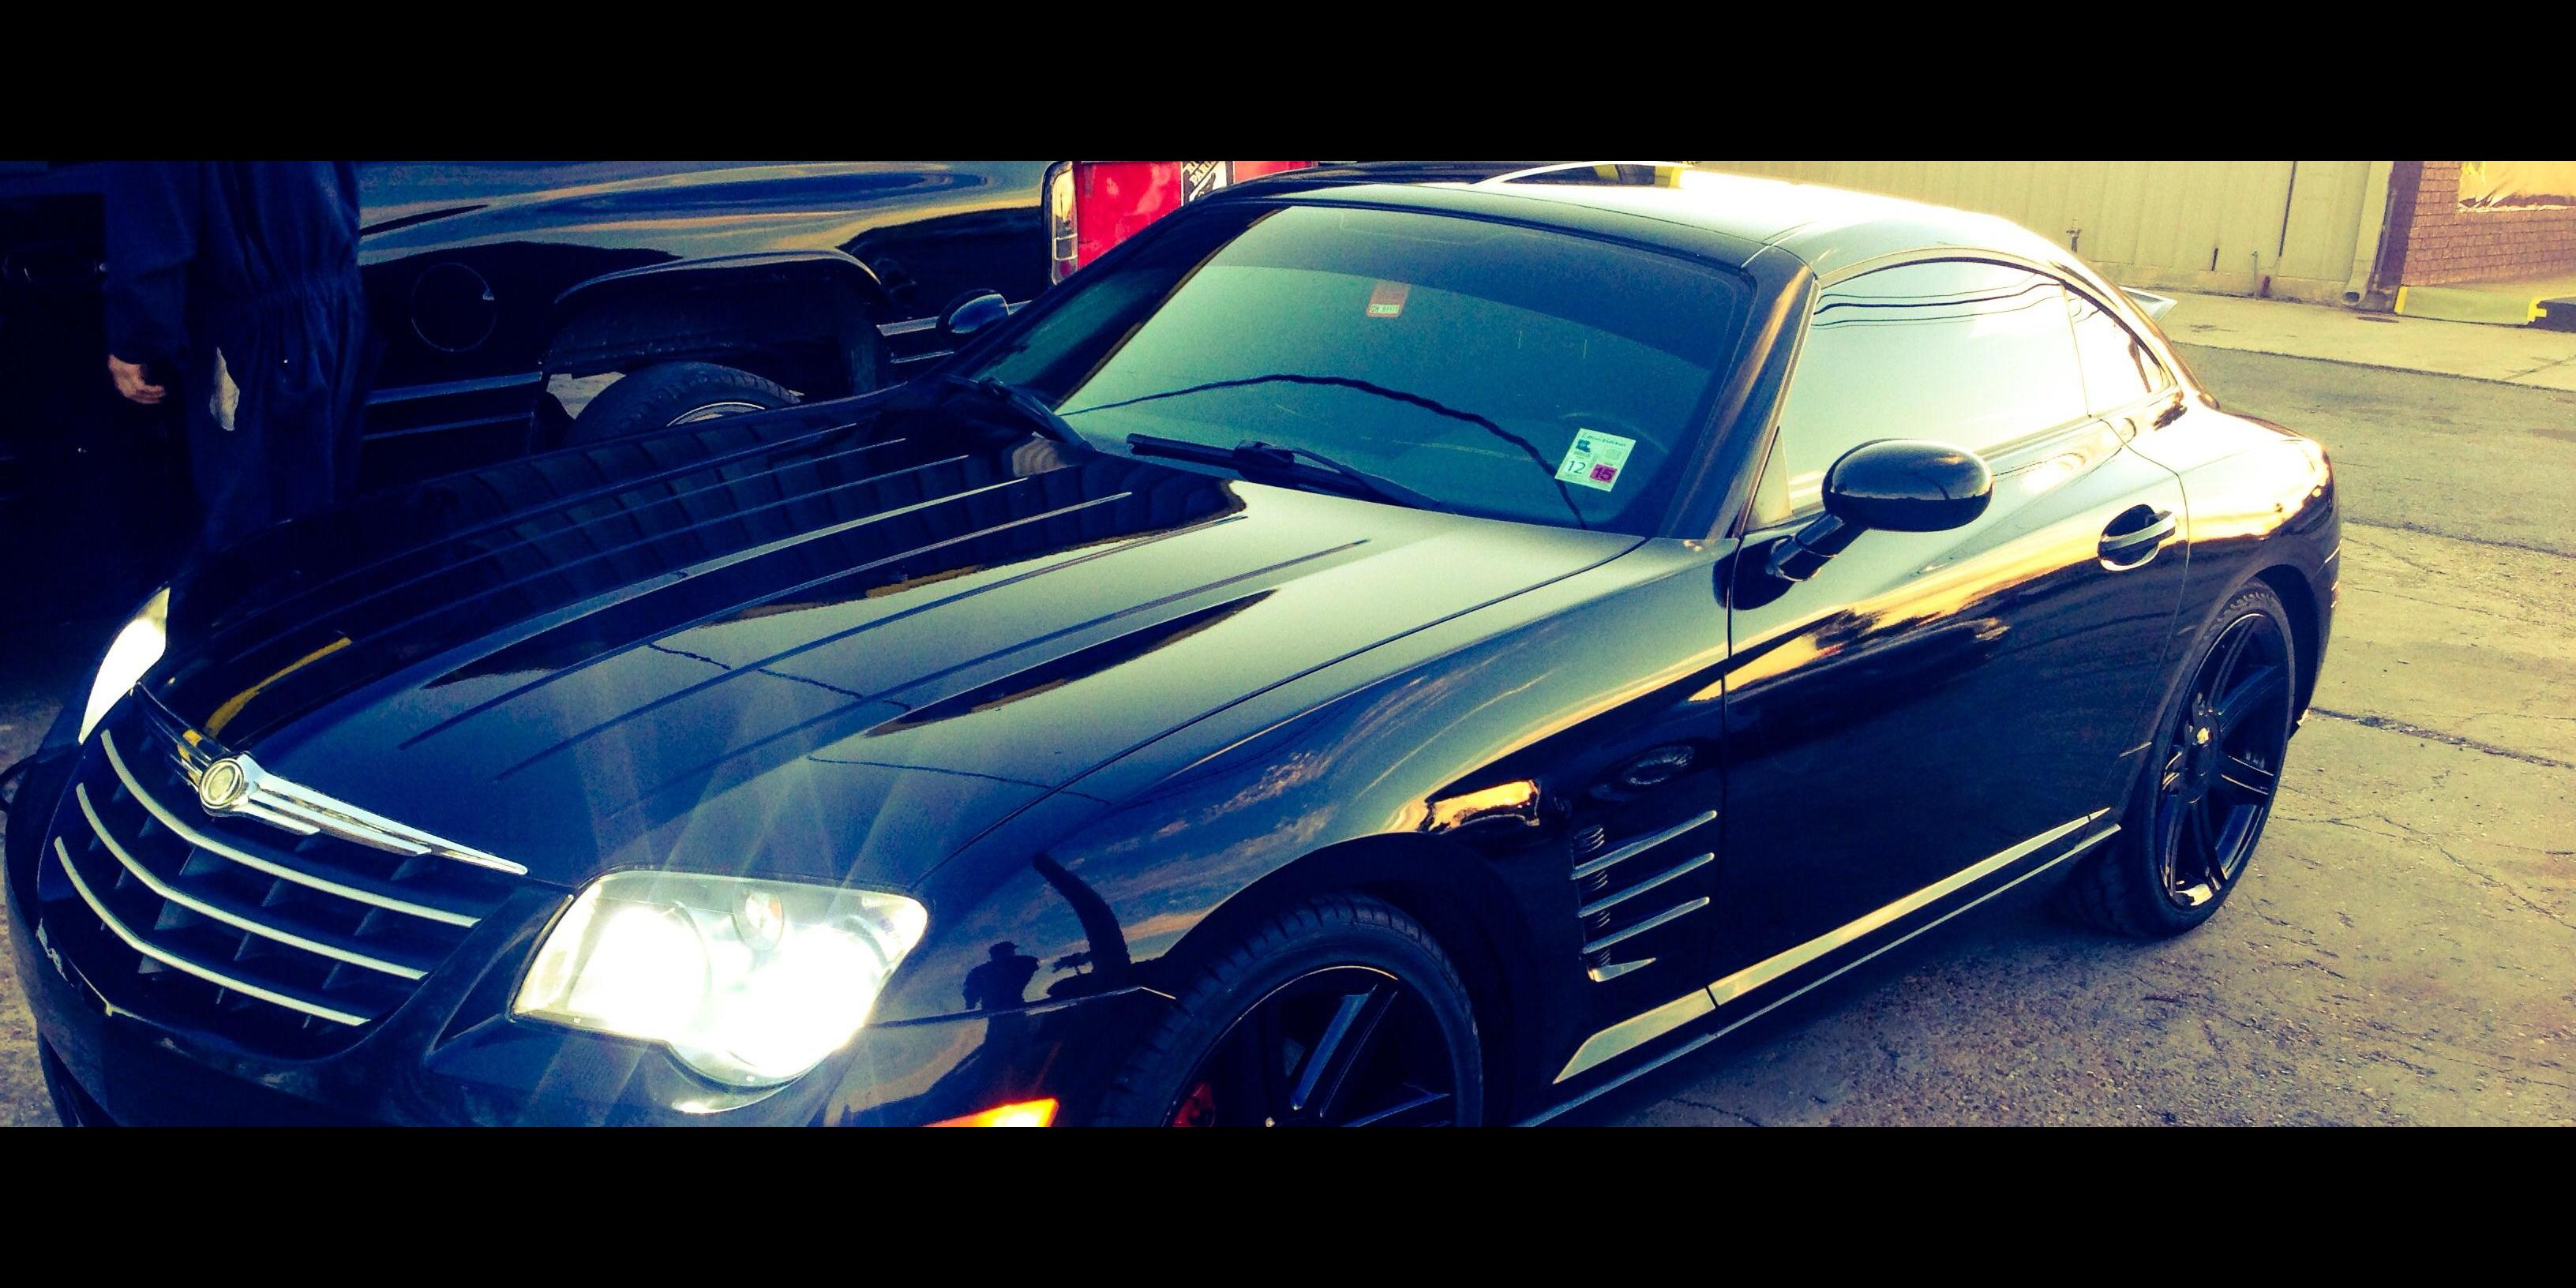 YoungKing's 2005 Chrysler Crossfire